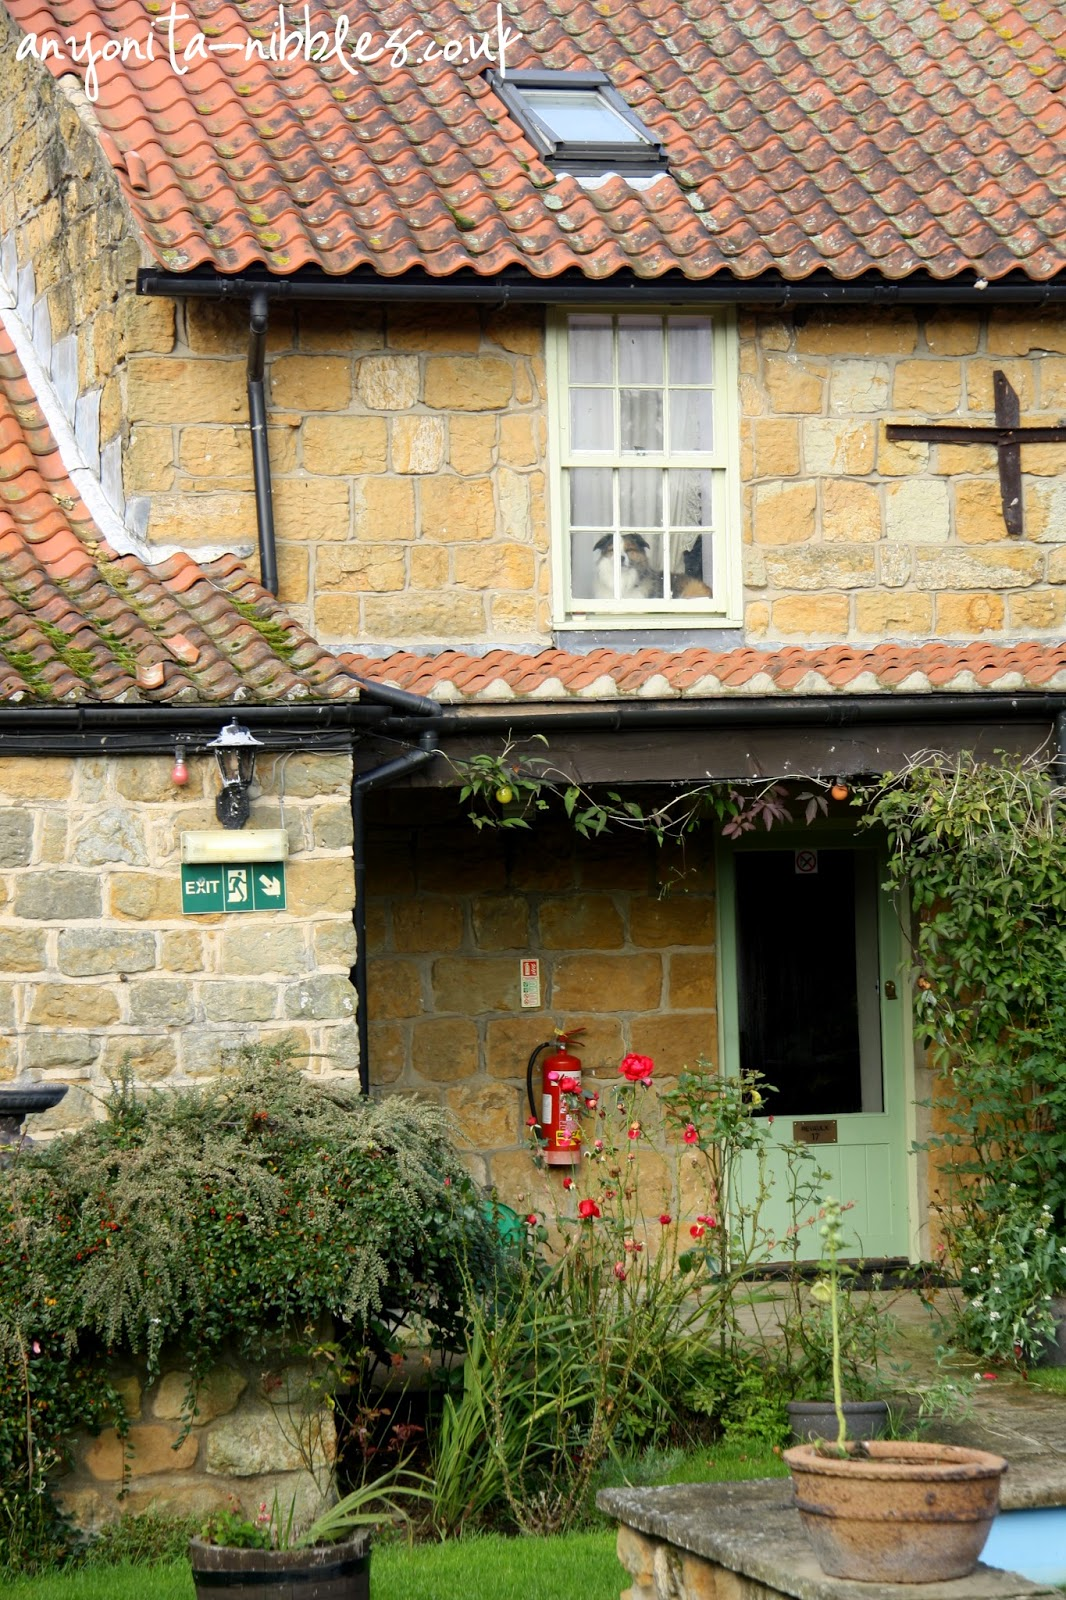 Pet friendly Ox Pasture Hall Hotel | Anyonita-nibbles.co.uk